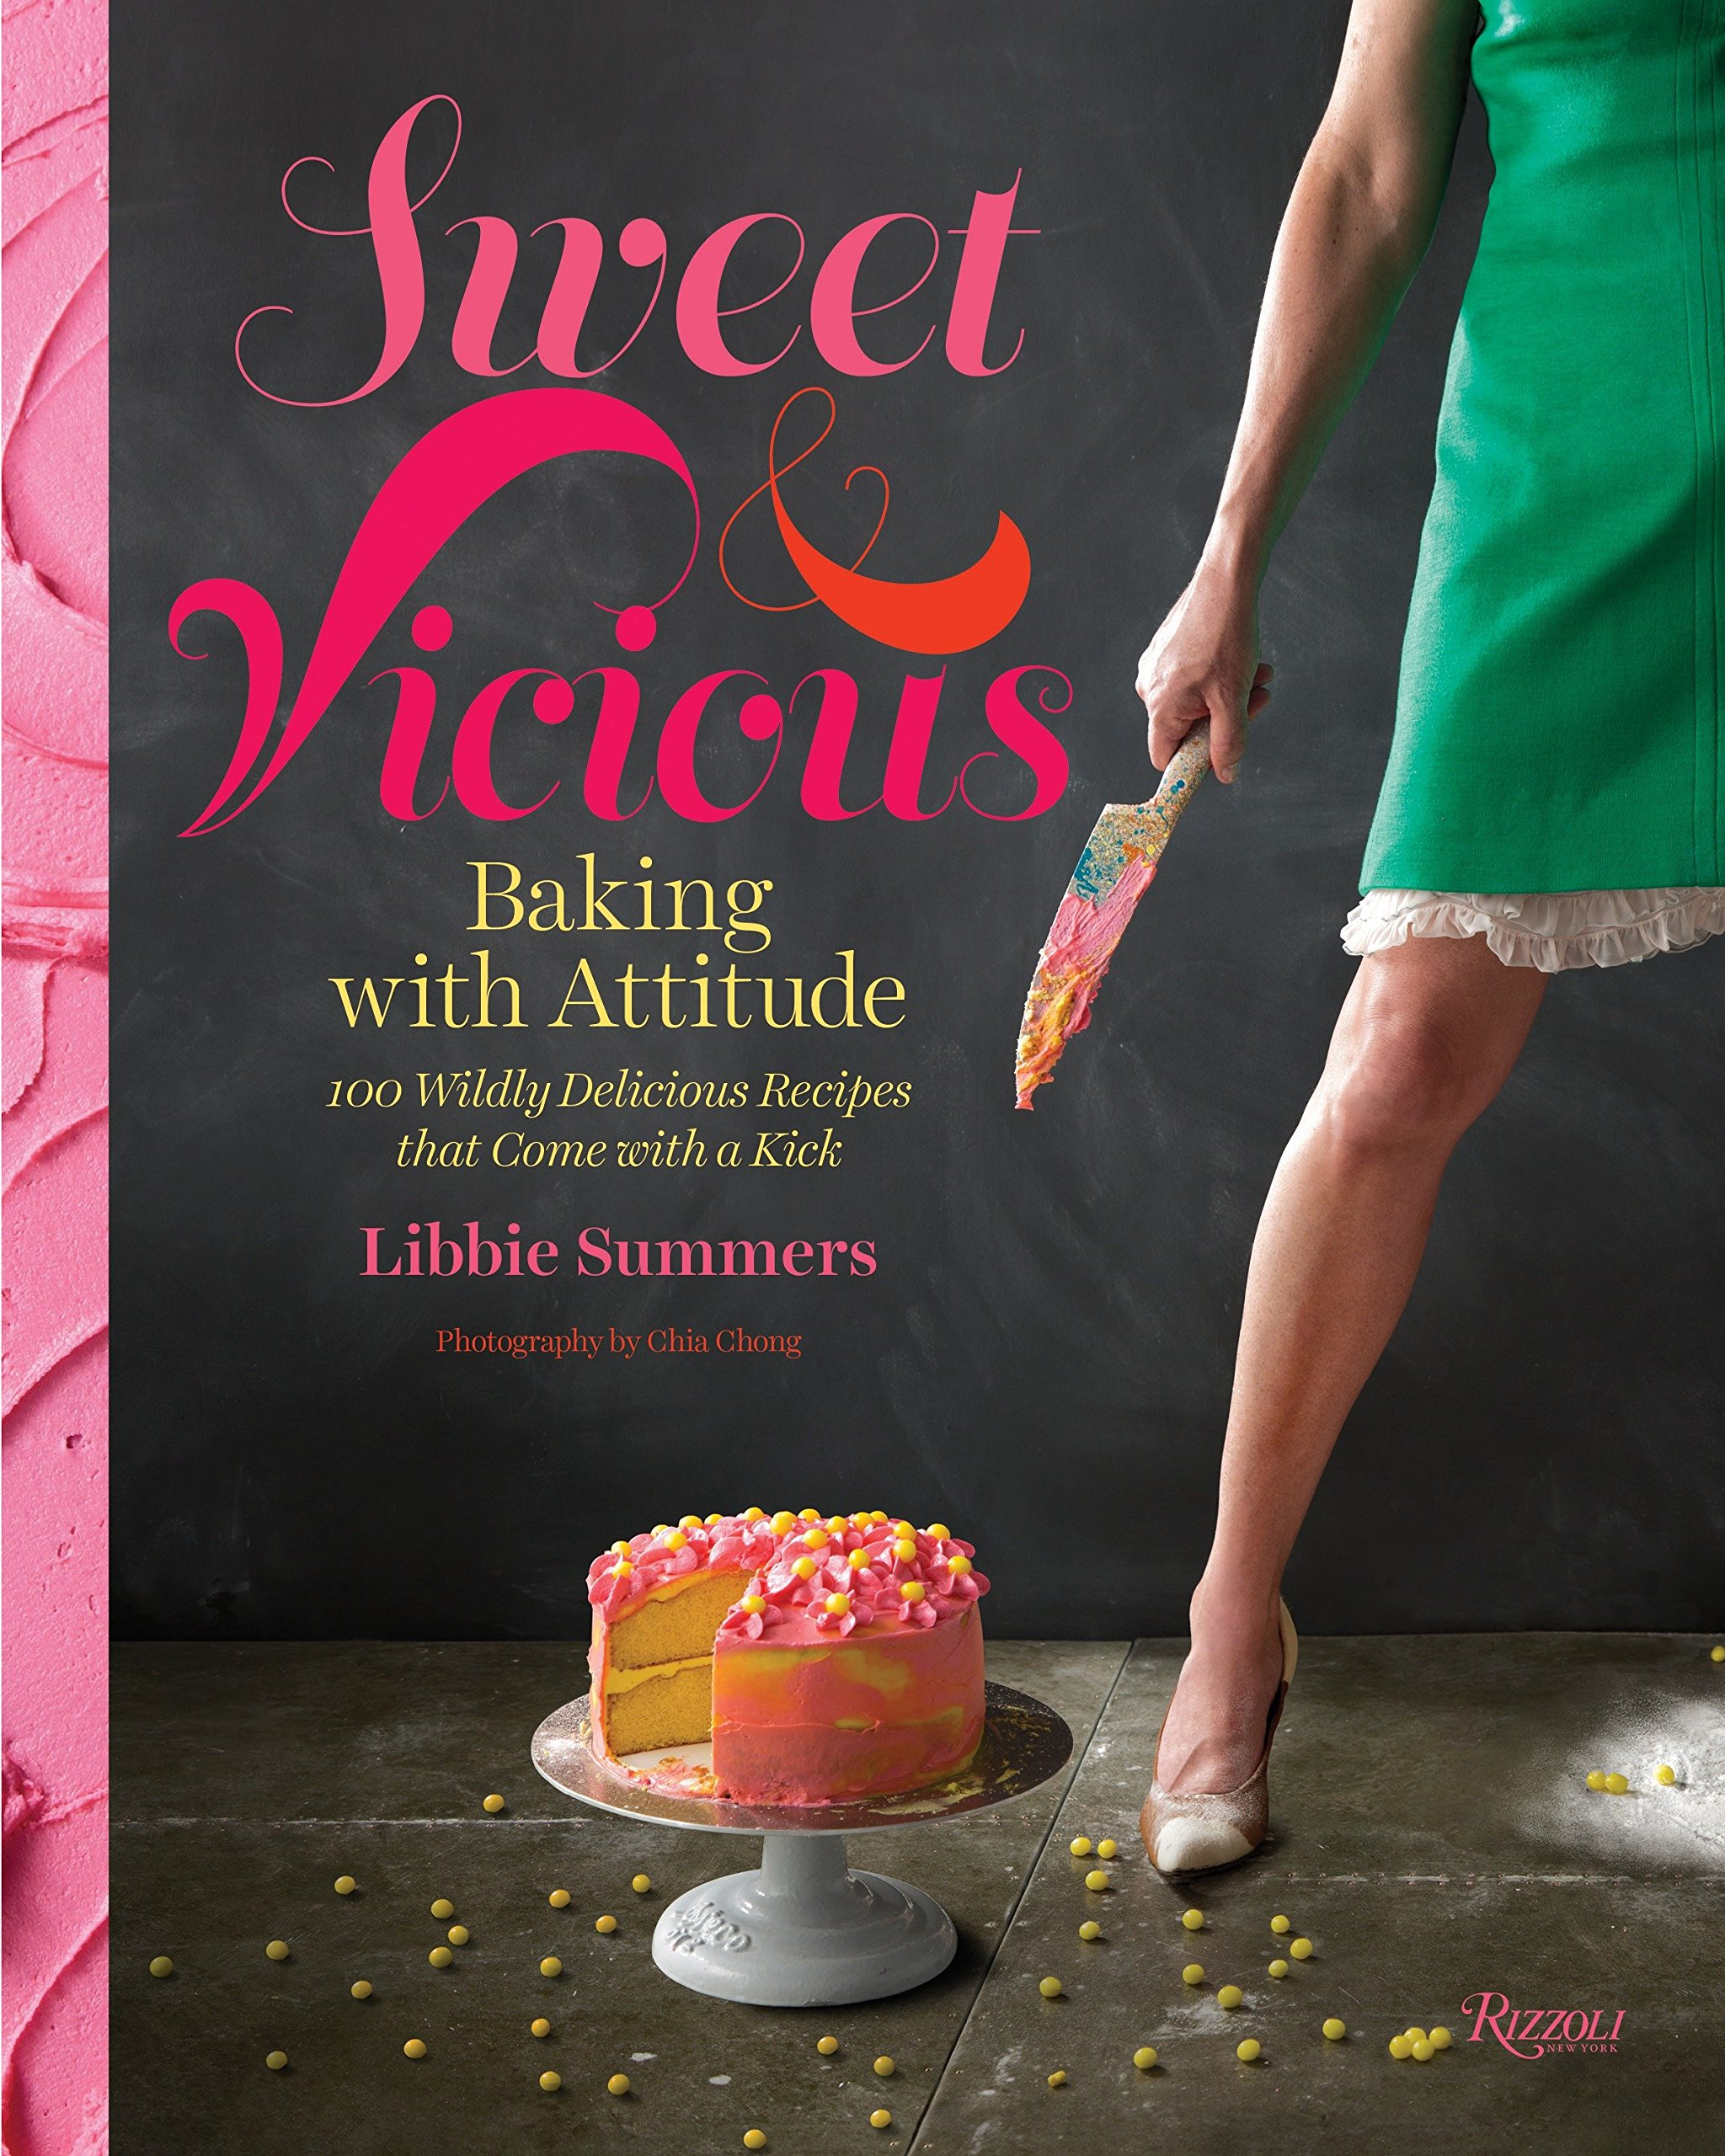 Sweet and Vicious: Baking with Attitude by Rizzoli